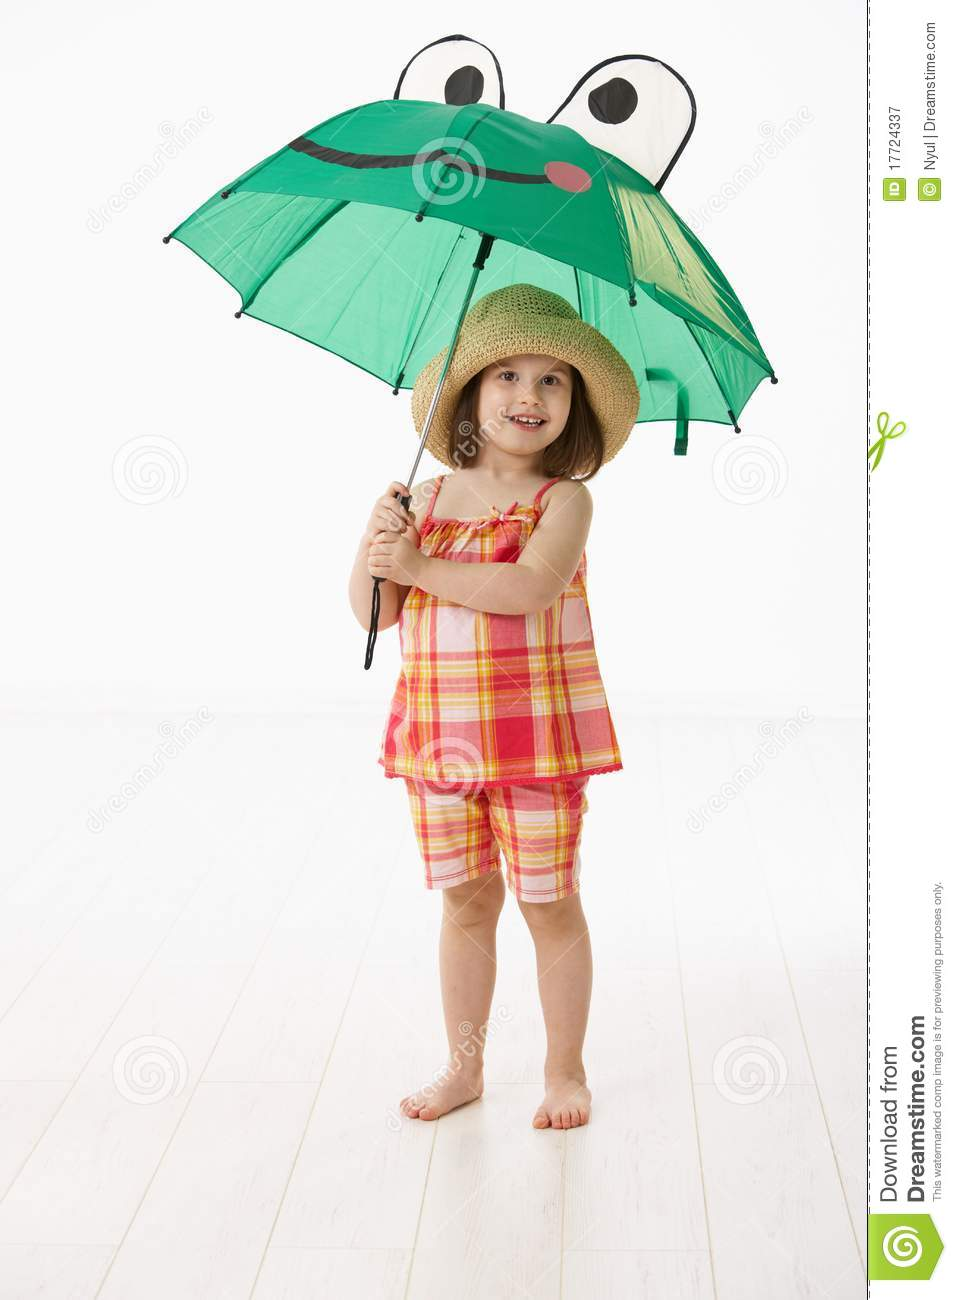 Little Girl With Umbrella Royalty Free Stock Photography